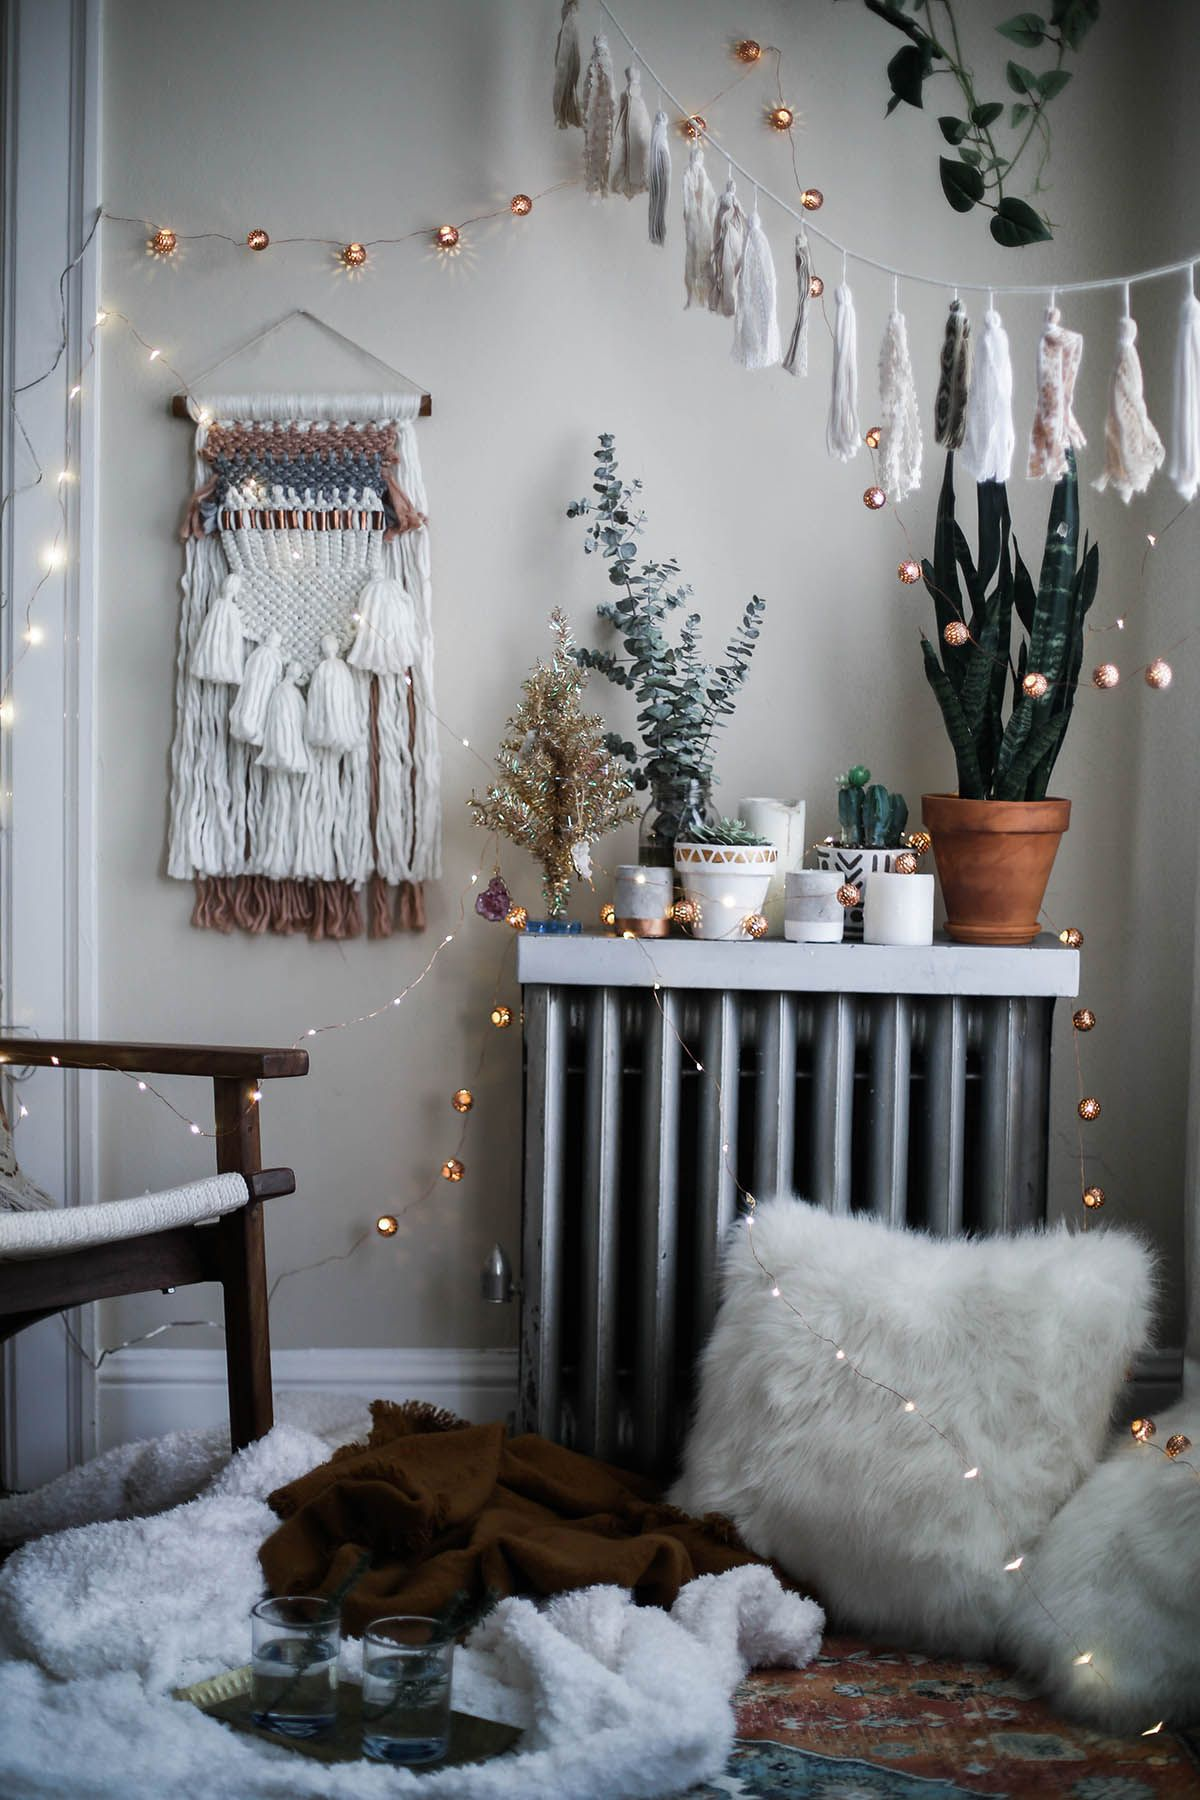 Cozy Bohemian Holiday Decorations With Urban Outers Home Rustic Decor E Boho Style Bedroom Fall